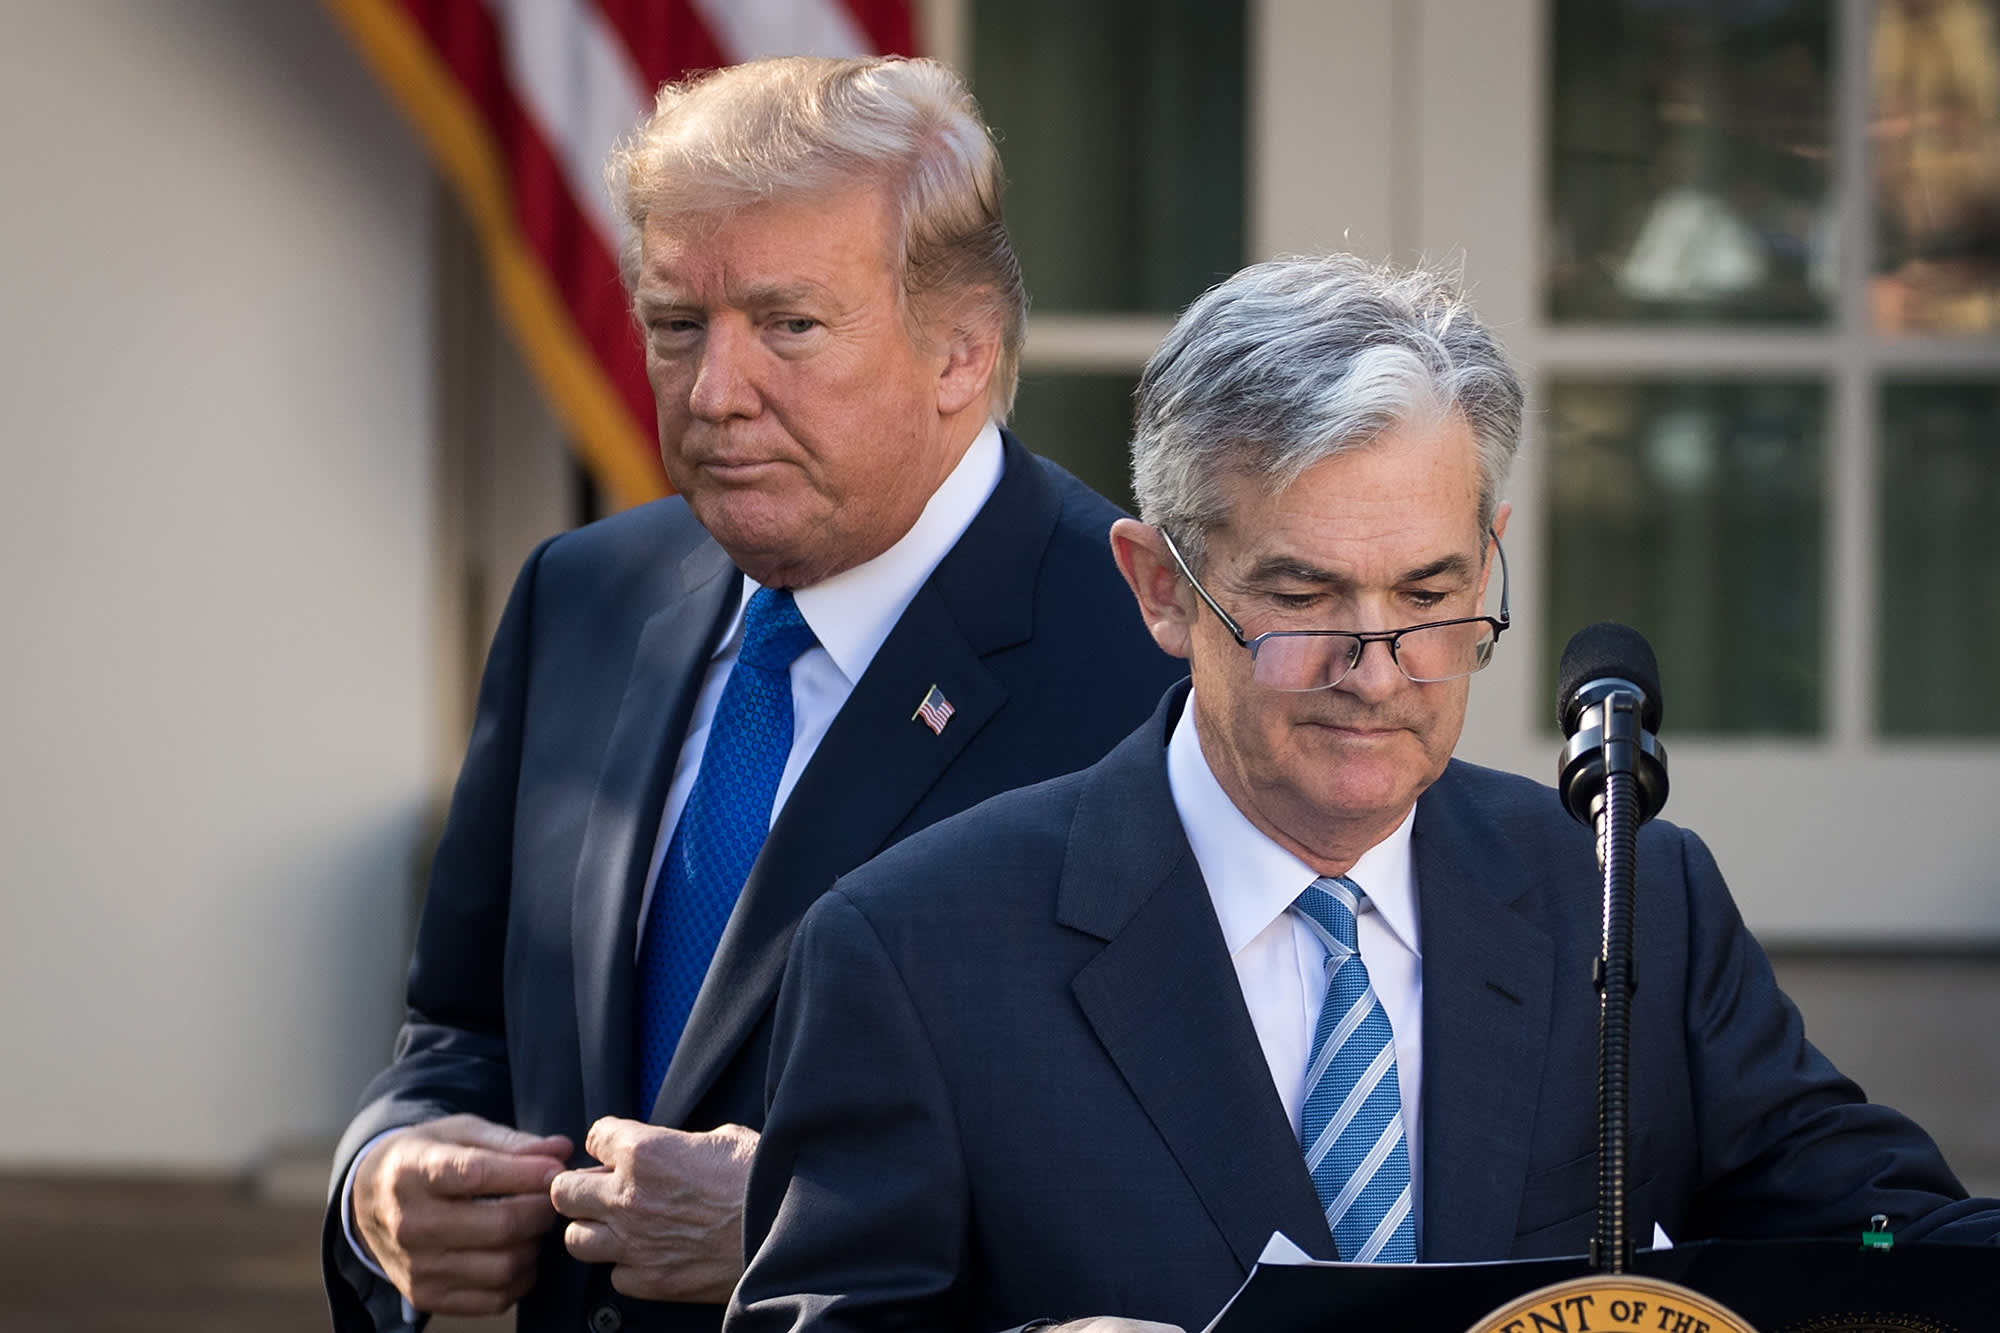 President Donald Trump looks on as his nominee for the chairman of the Federal Reserve Jerome Powell takes to the podium during a press event in the Rose Garden at the White House, November 2, 2017 in Washington, DC.